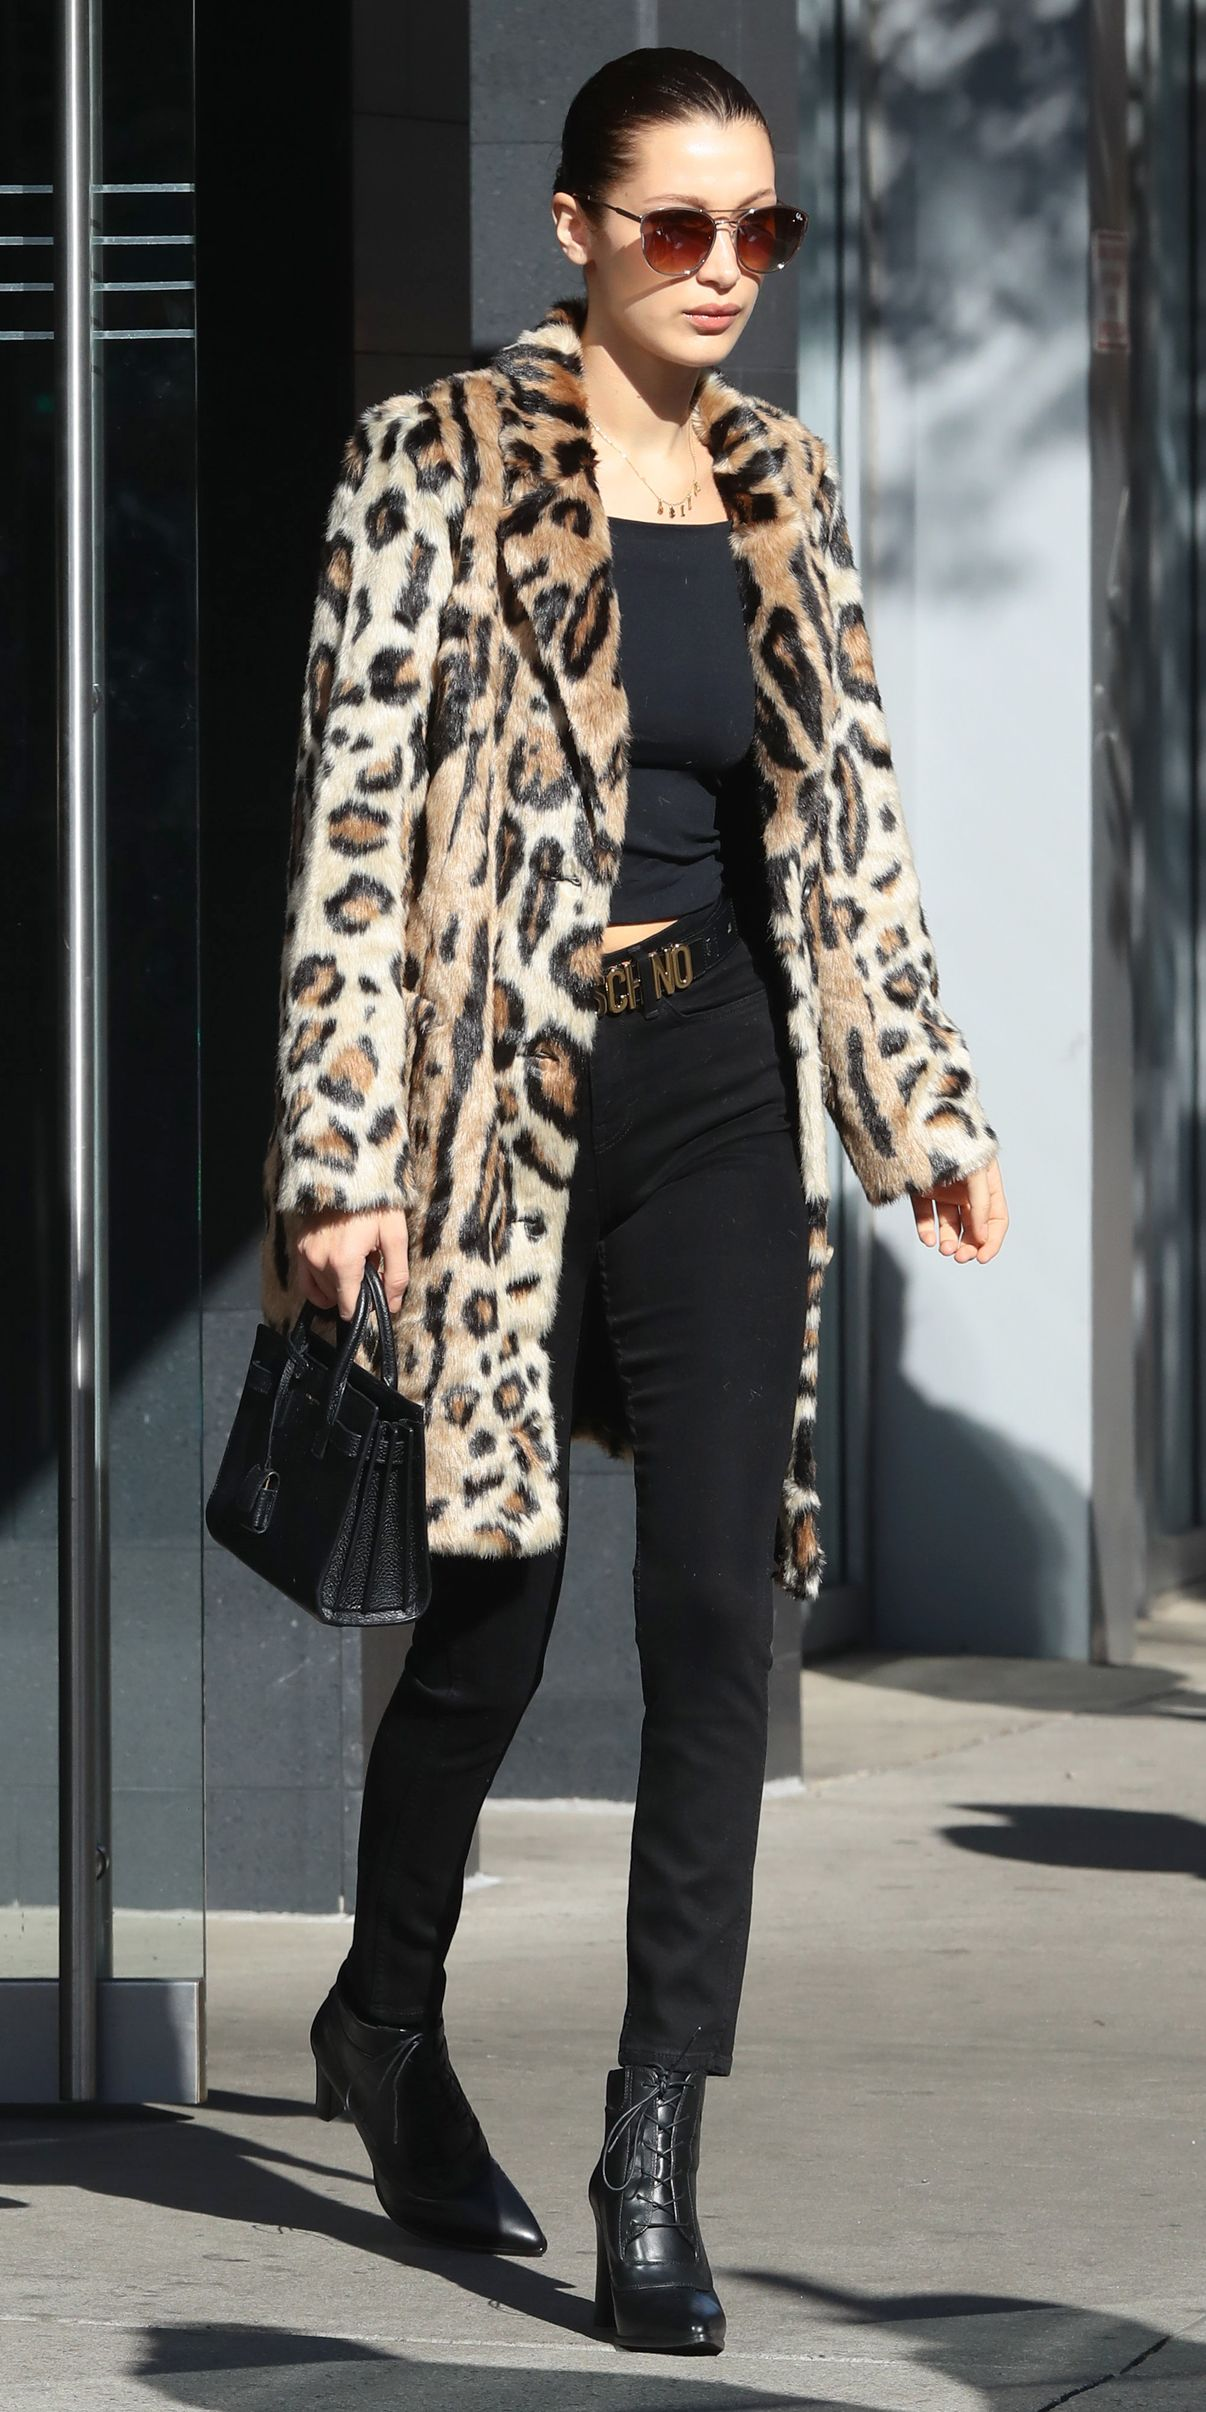 a22c0b1782e 12 Celebrity Images to Convince You That You Need a Leopard-Print Coat -  Bella Hadid from InStyle.com